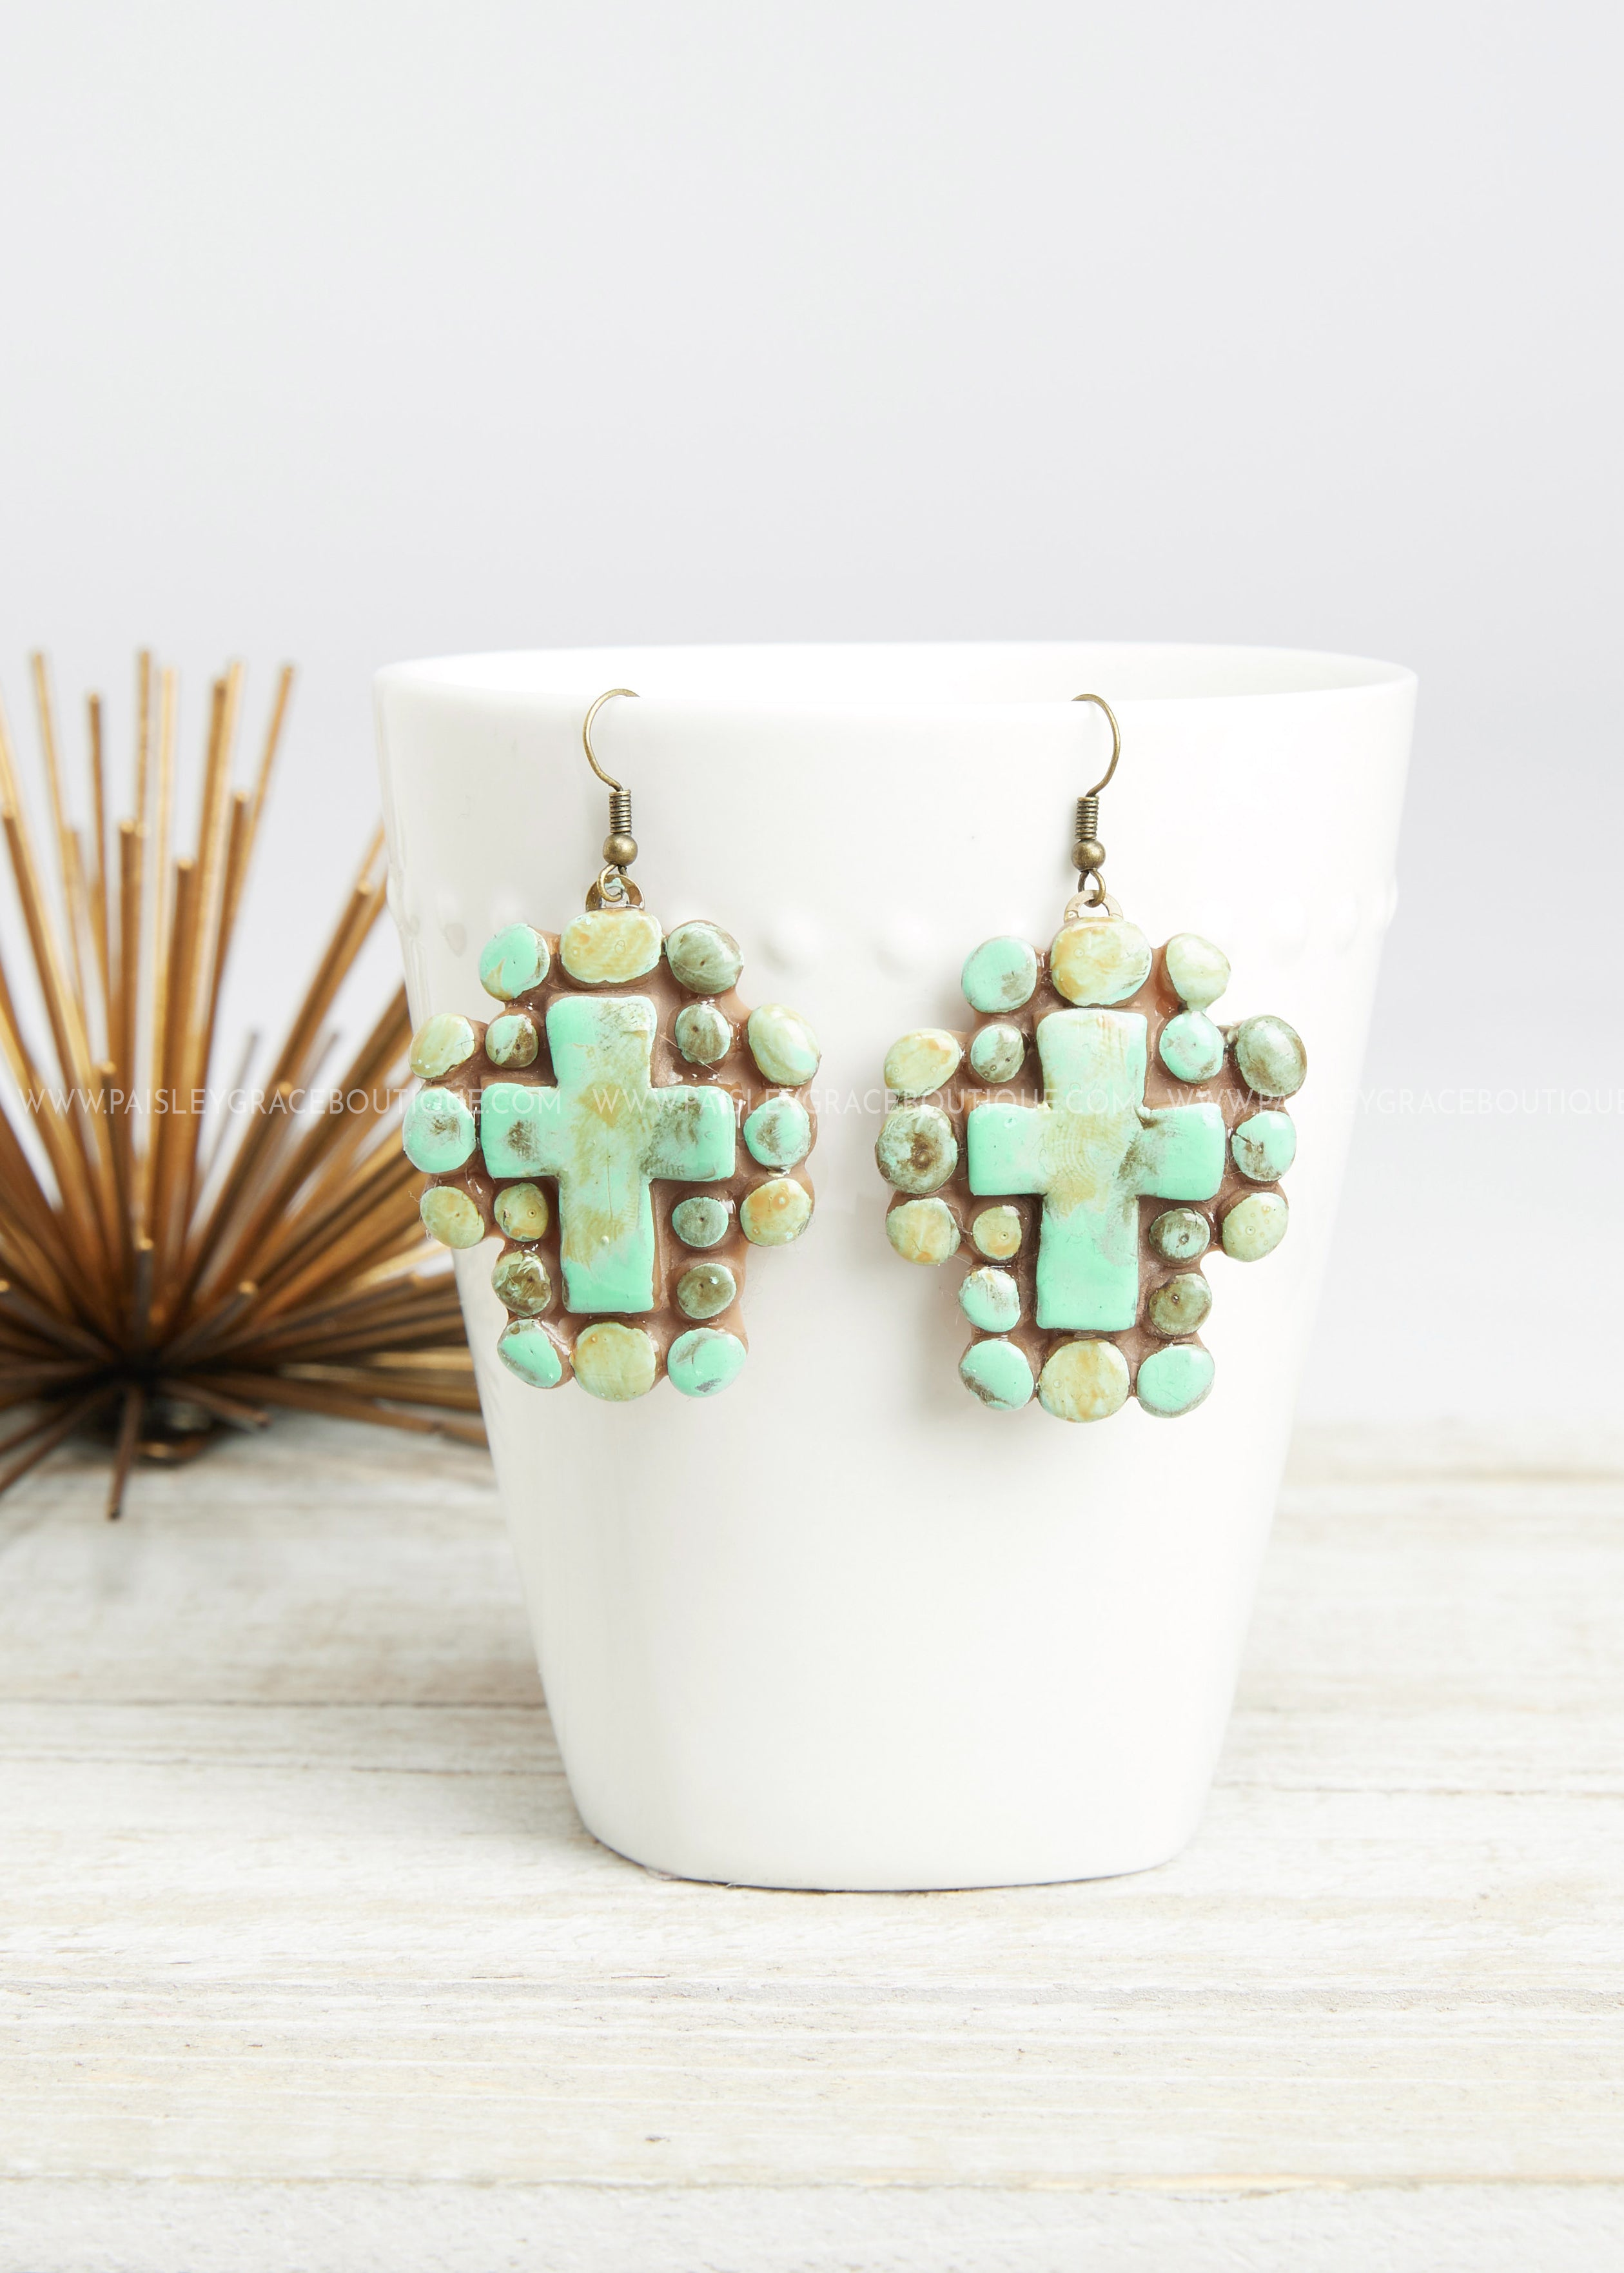 Turquoise Cross Clay Earrings